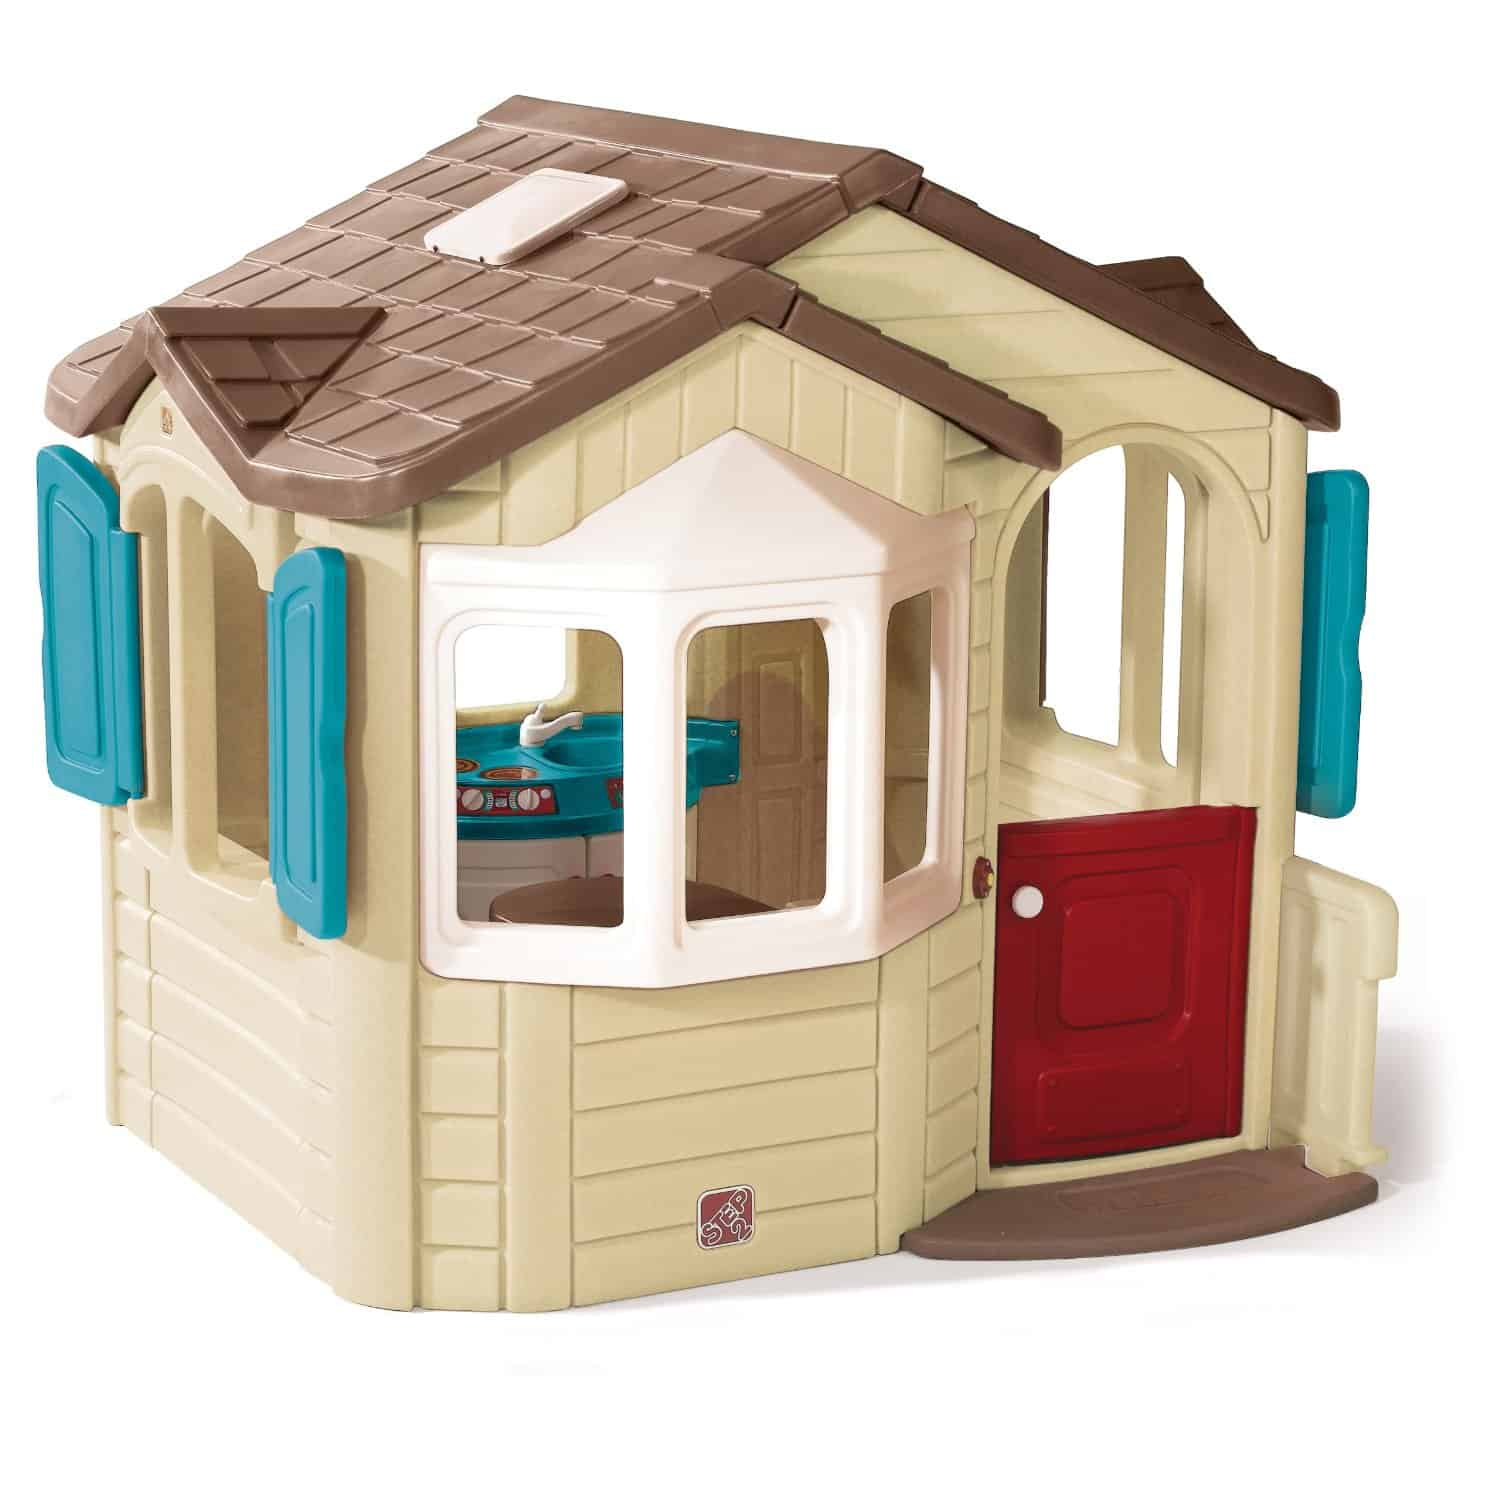 plastic playhouses cool outdoor toys. Black Bedroom Furniture Sets. Home Design Ideas